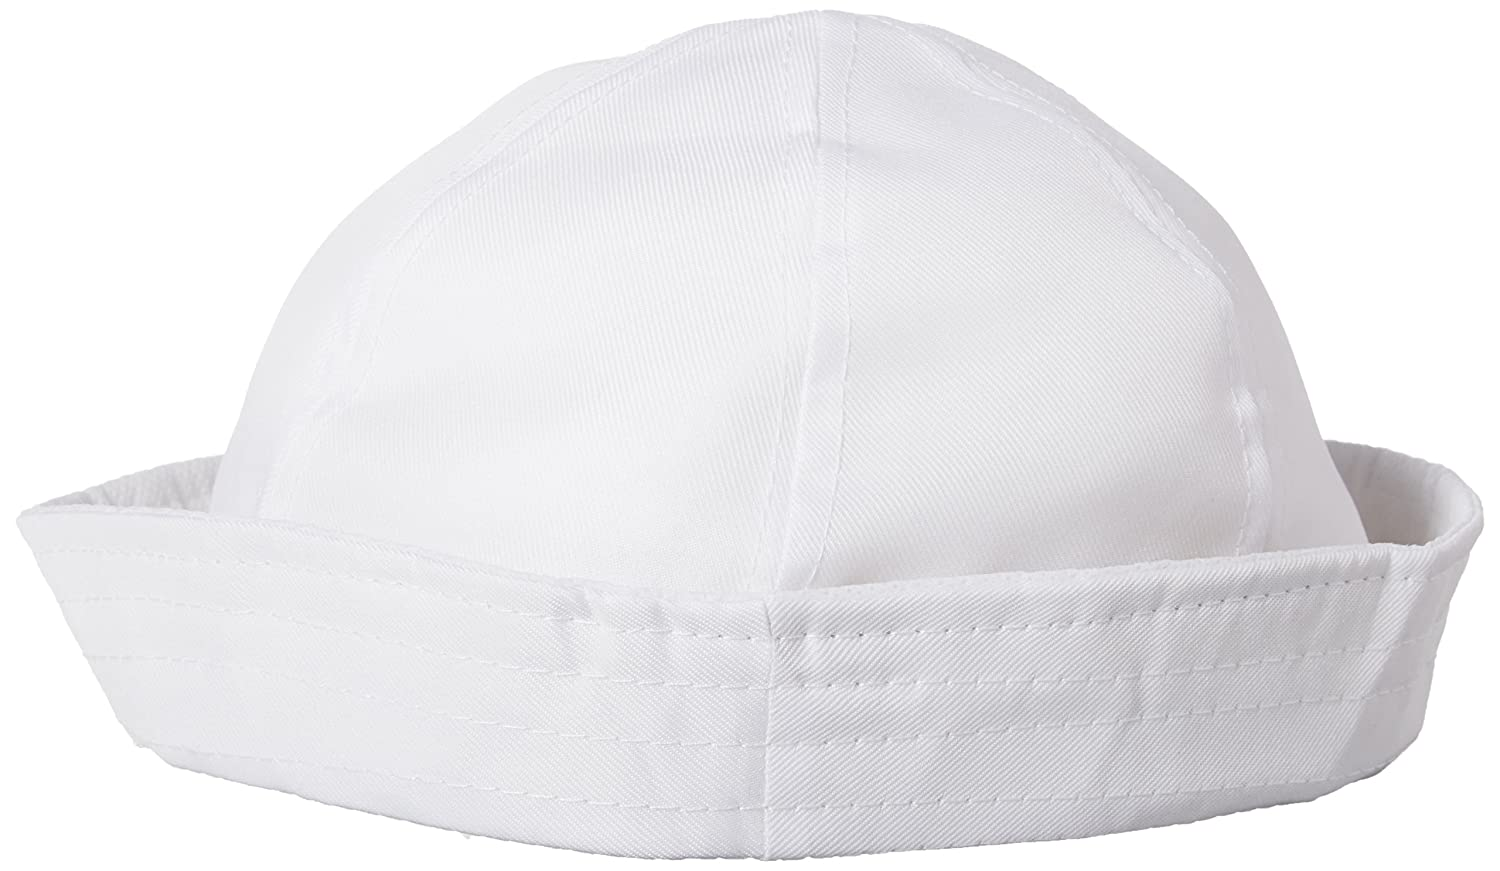 Amazon.com  12 white sailor hats - one dz hats fits kids and average adults  by Unknown  Toys   Games c4a34fd94b1